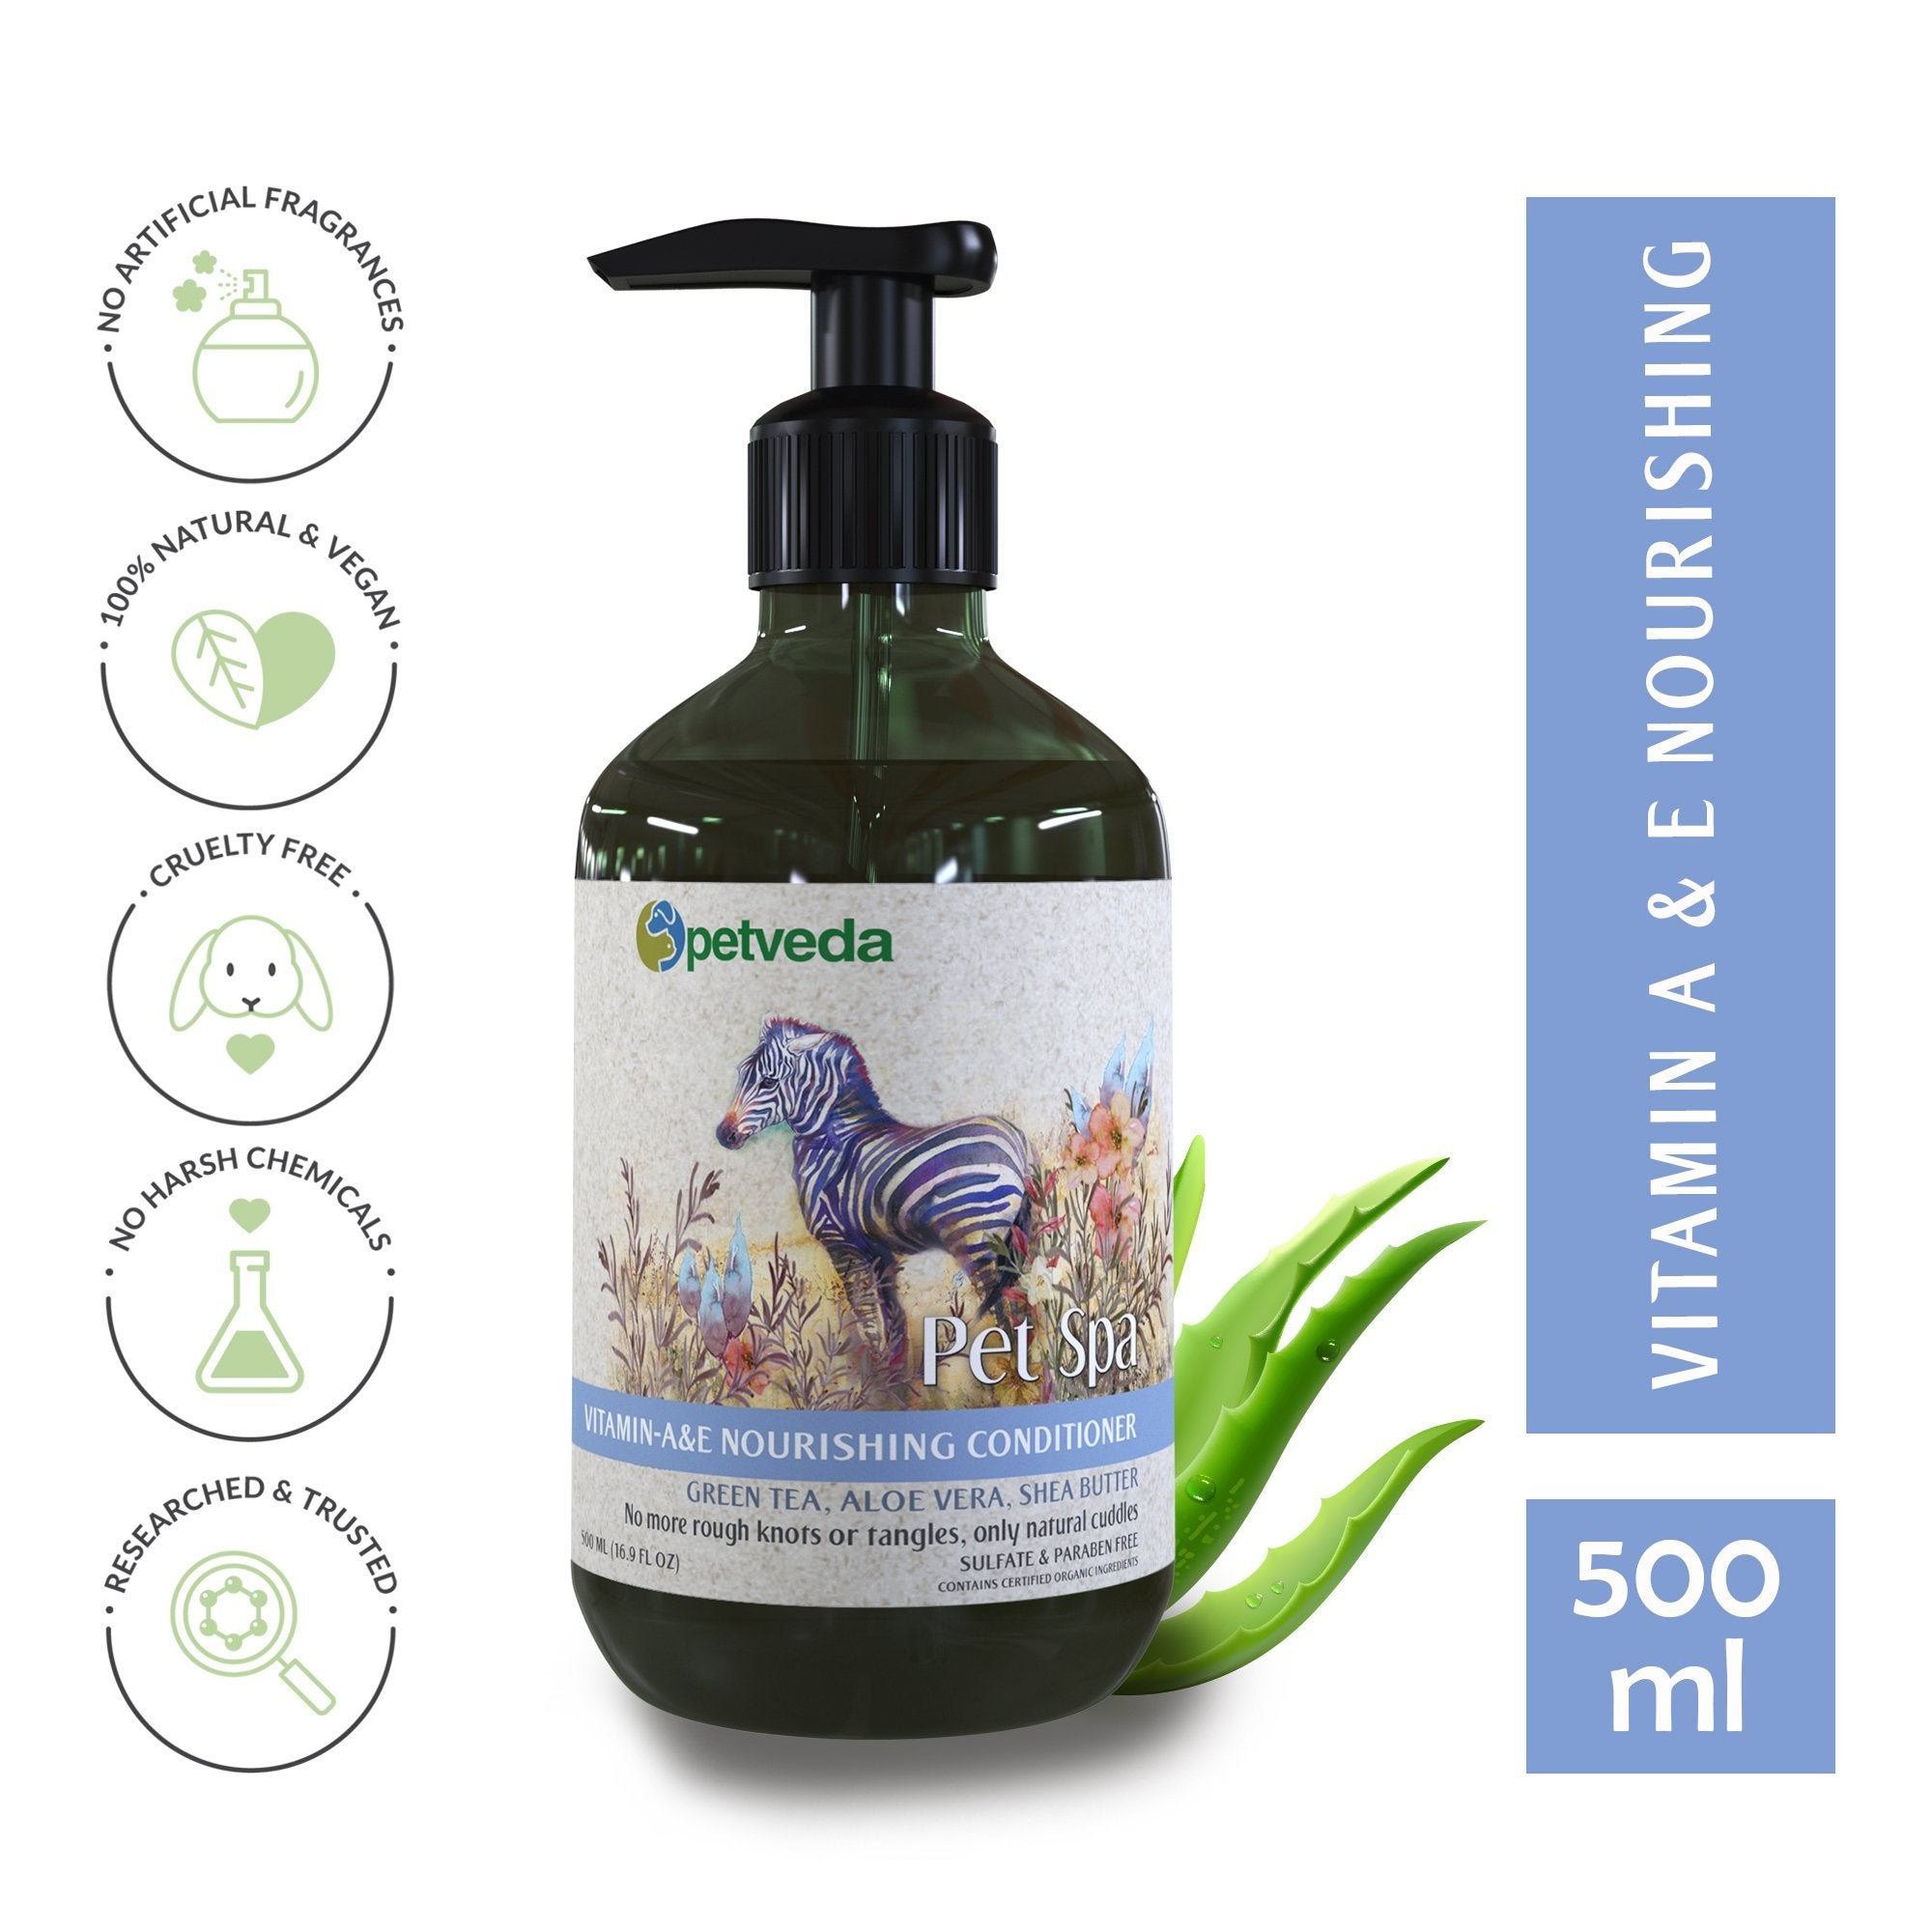 Pet Spa - Vitamin A & E Nourishing Conditioner 500ml